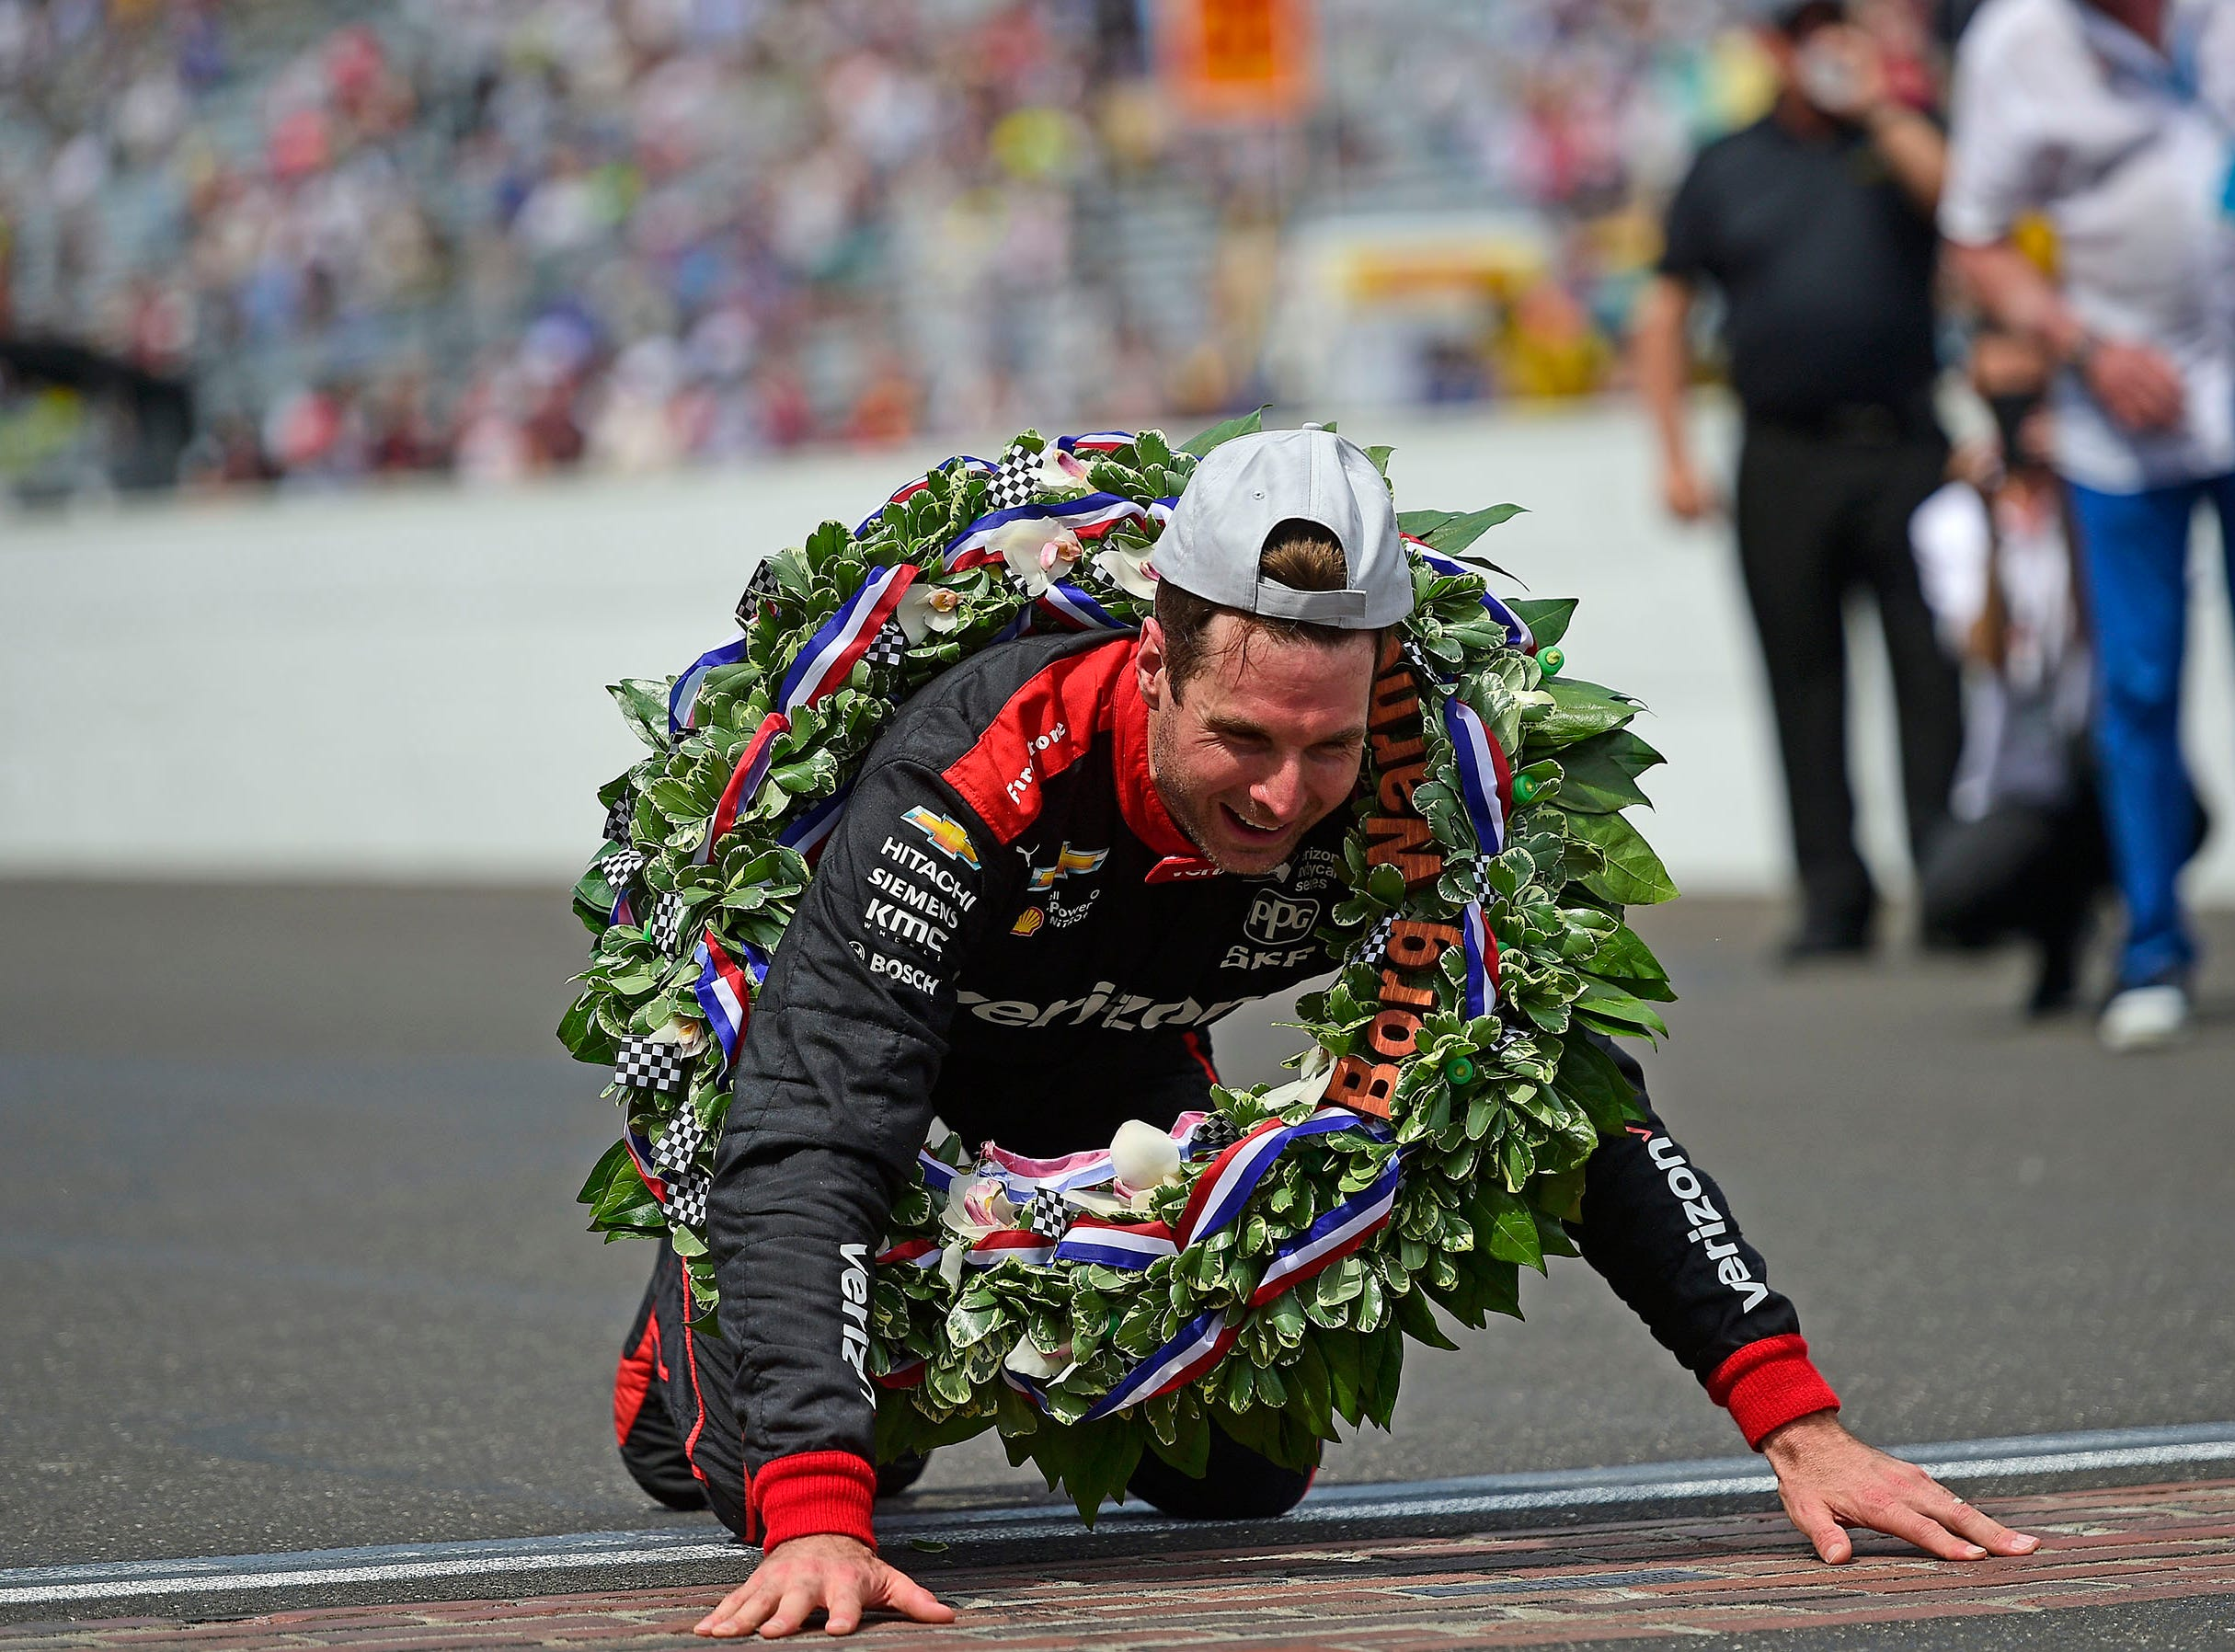 May 27: Will Power celebrates on the bricks after winning the 102nd Indianapolis 500 at Indianapolis Motor Speedway.